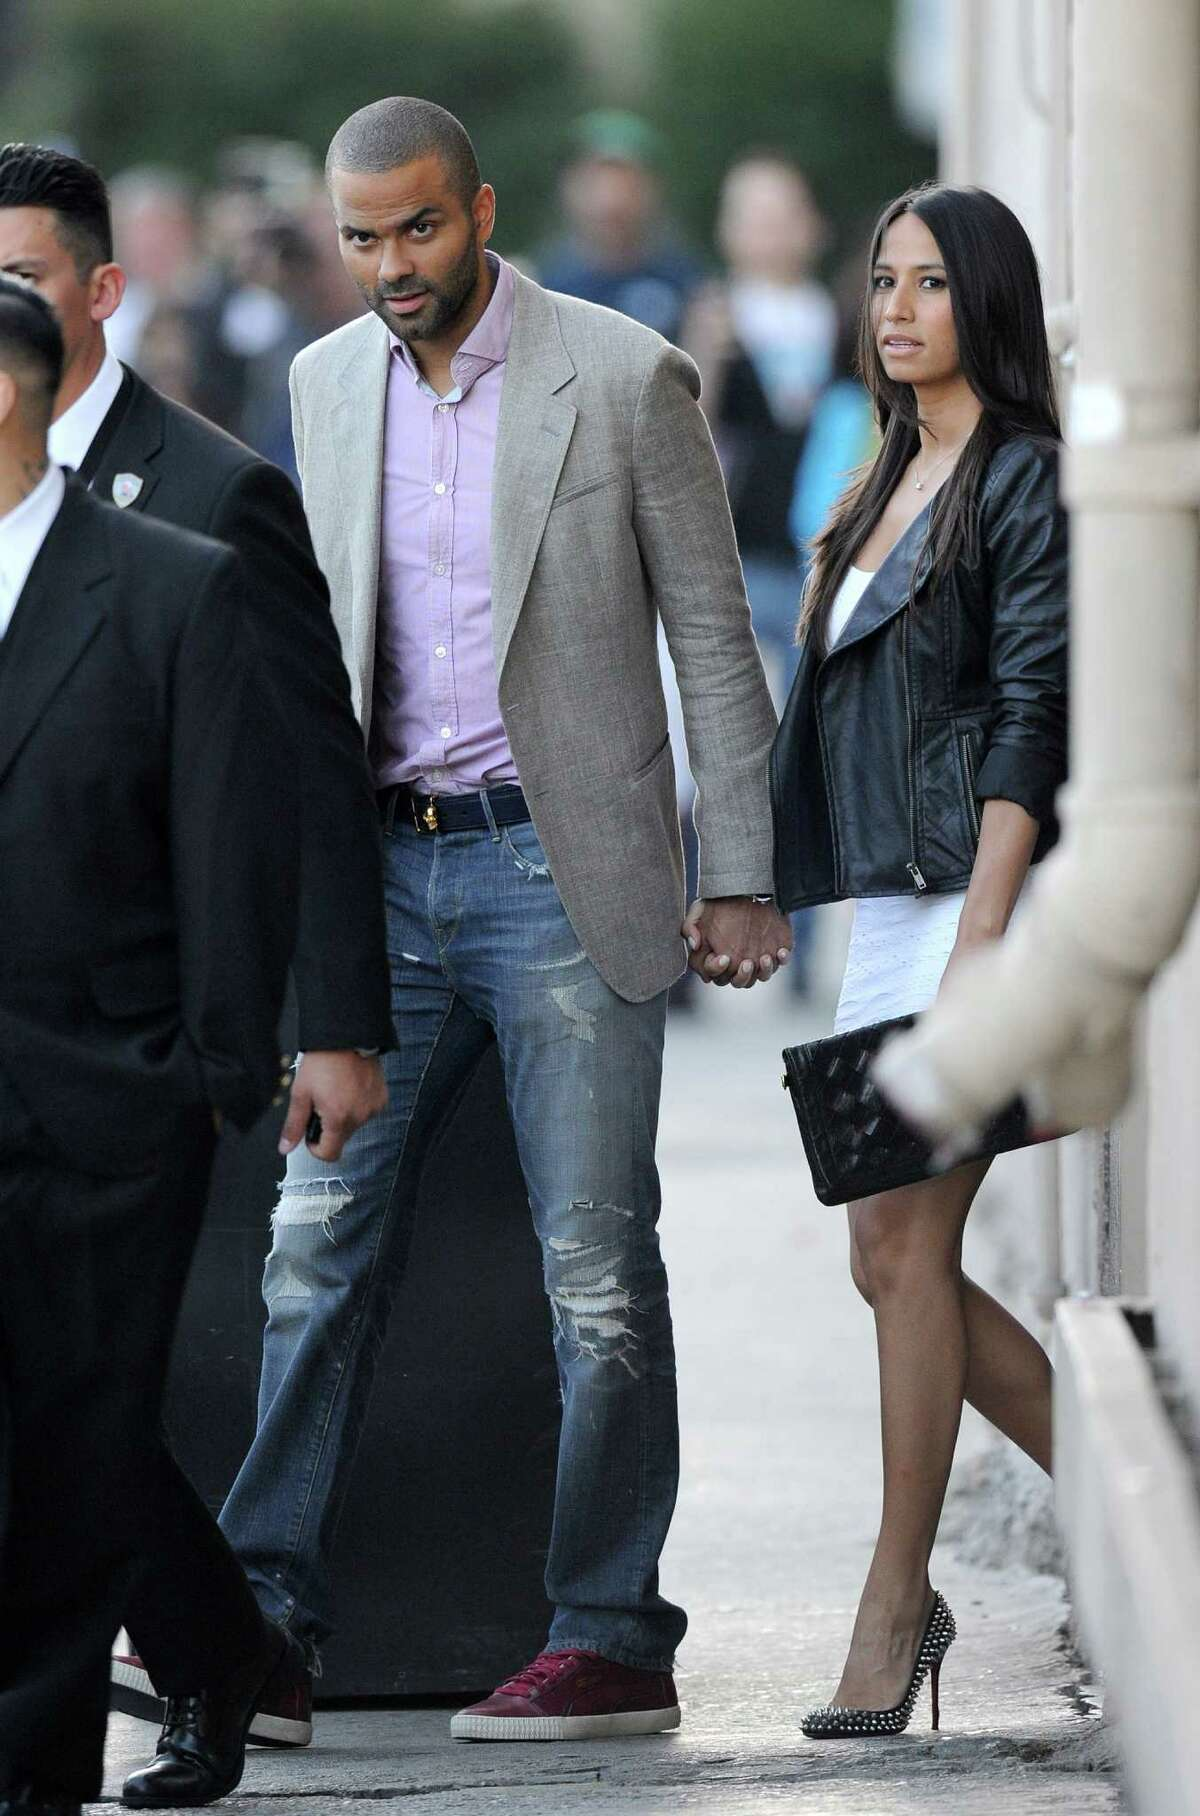 Tony Parker's wife and French journalist, Axelle Francine The two were married last year and have a baby boy named Josh.